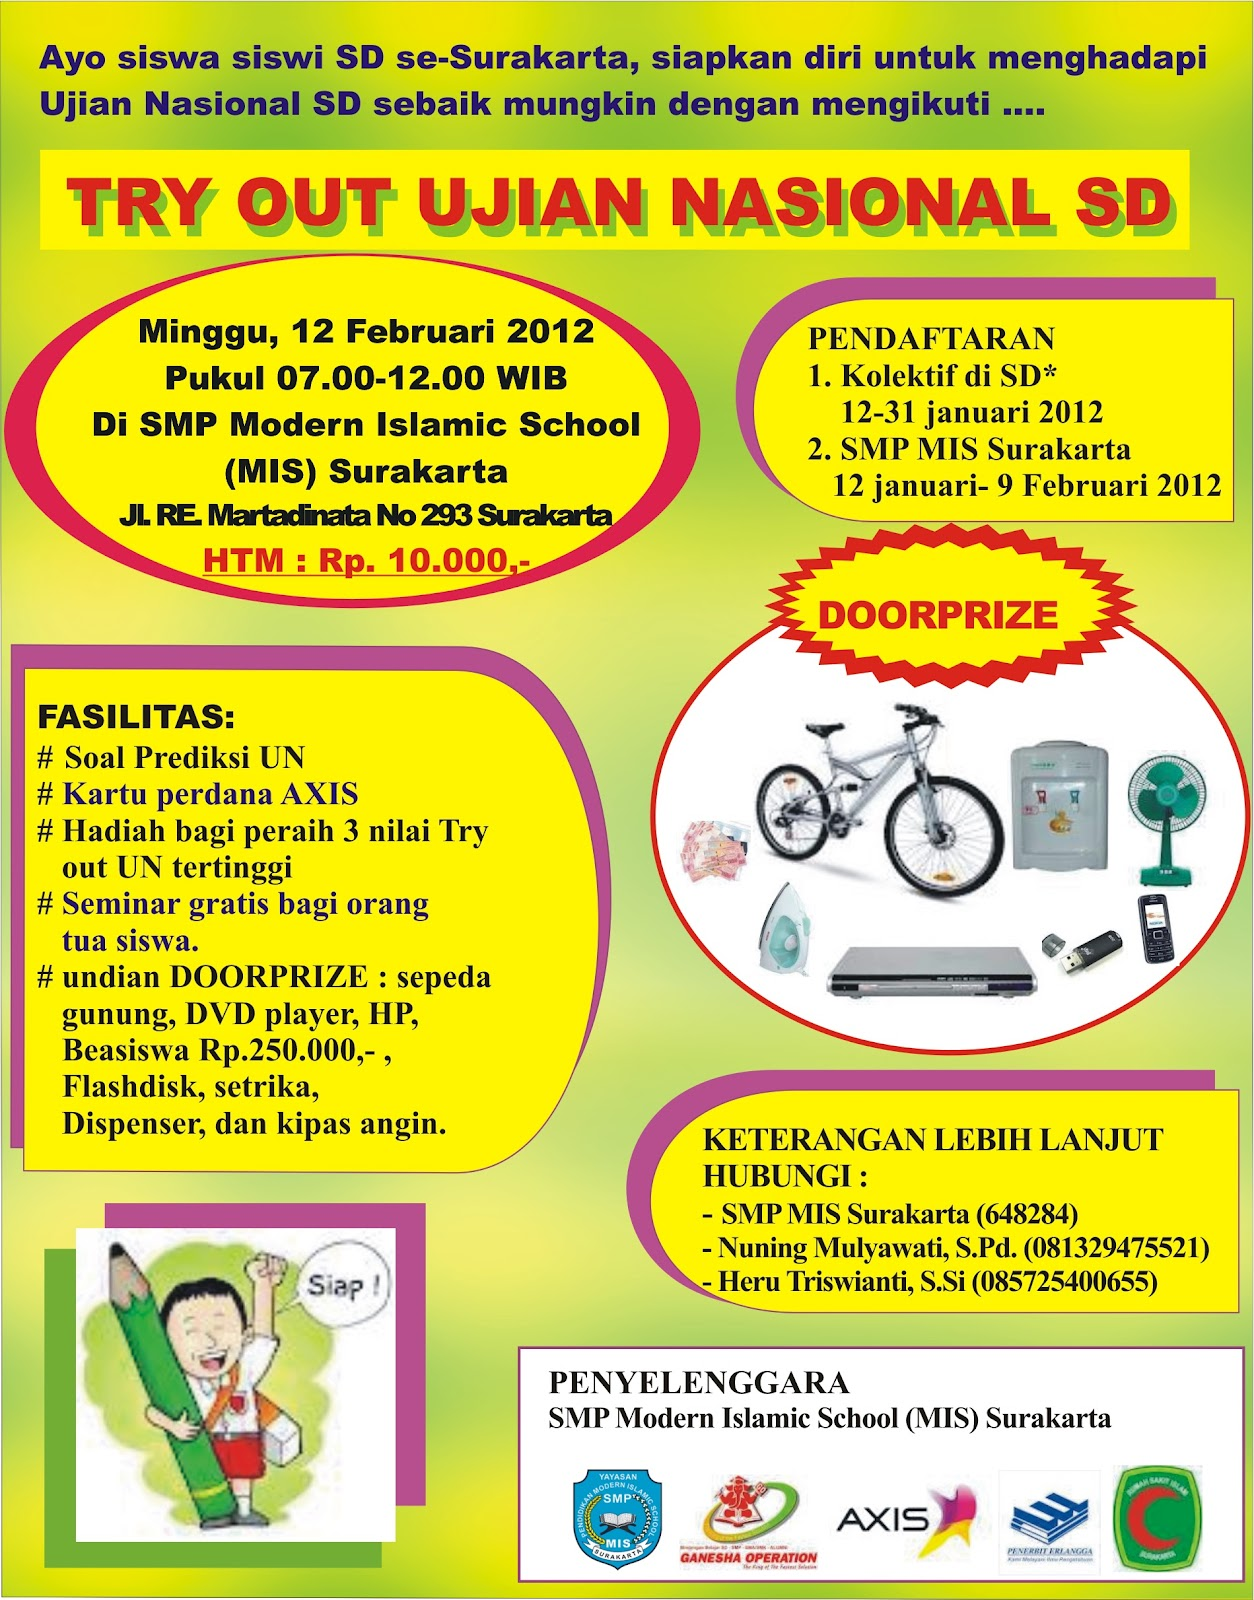 TRY OUT UJIAN NASIONAL SD SURAKARTA